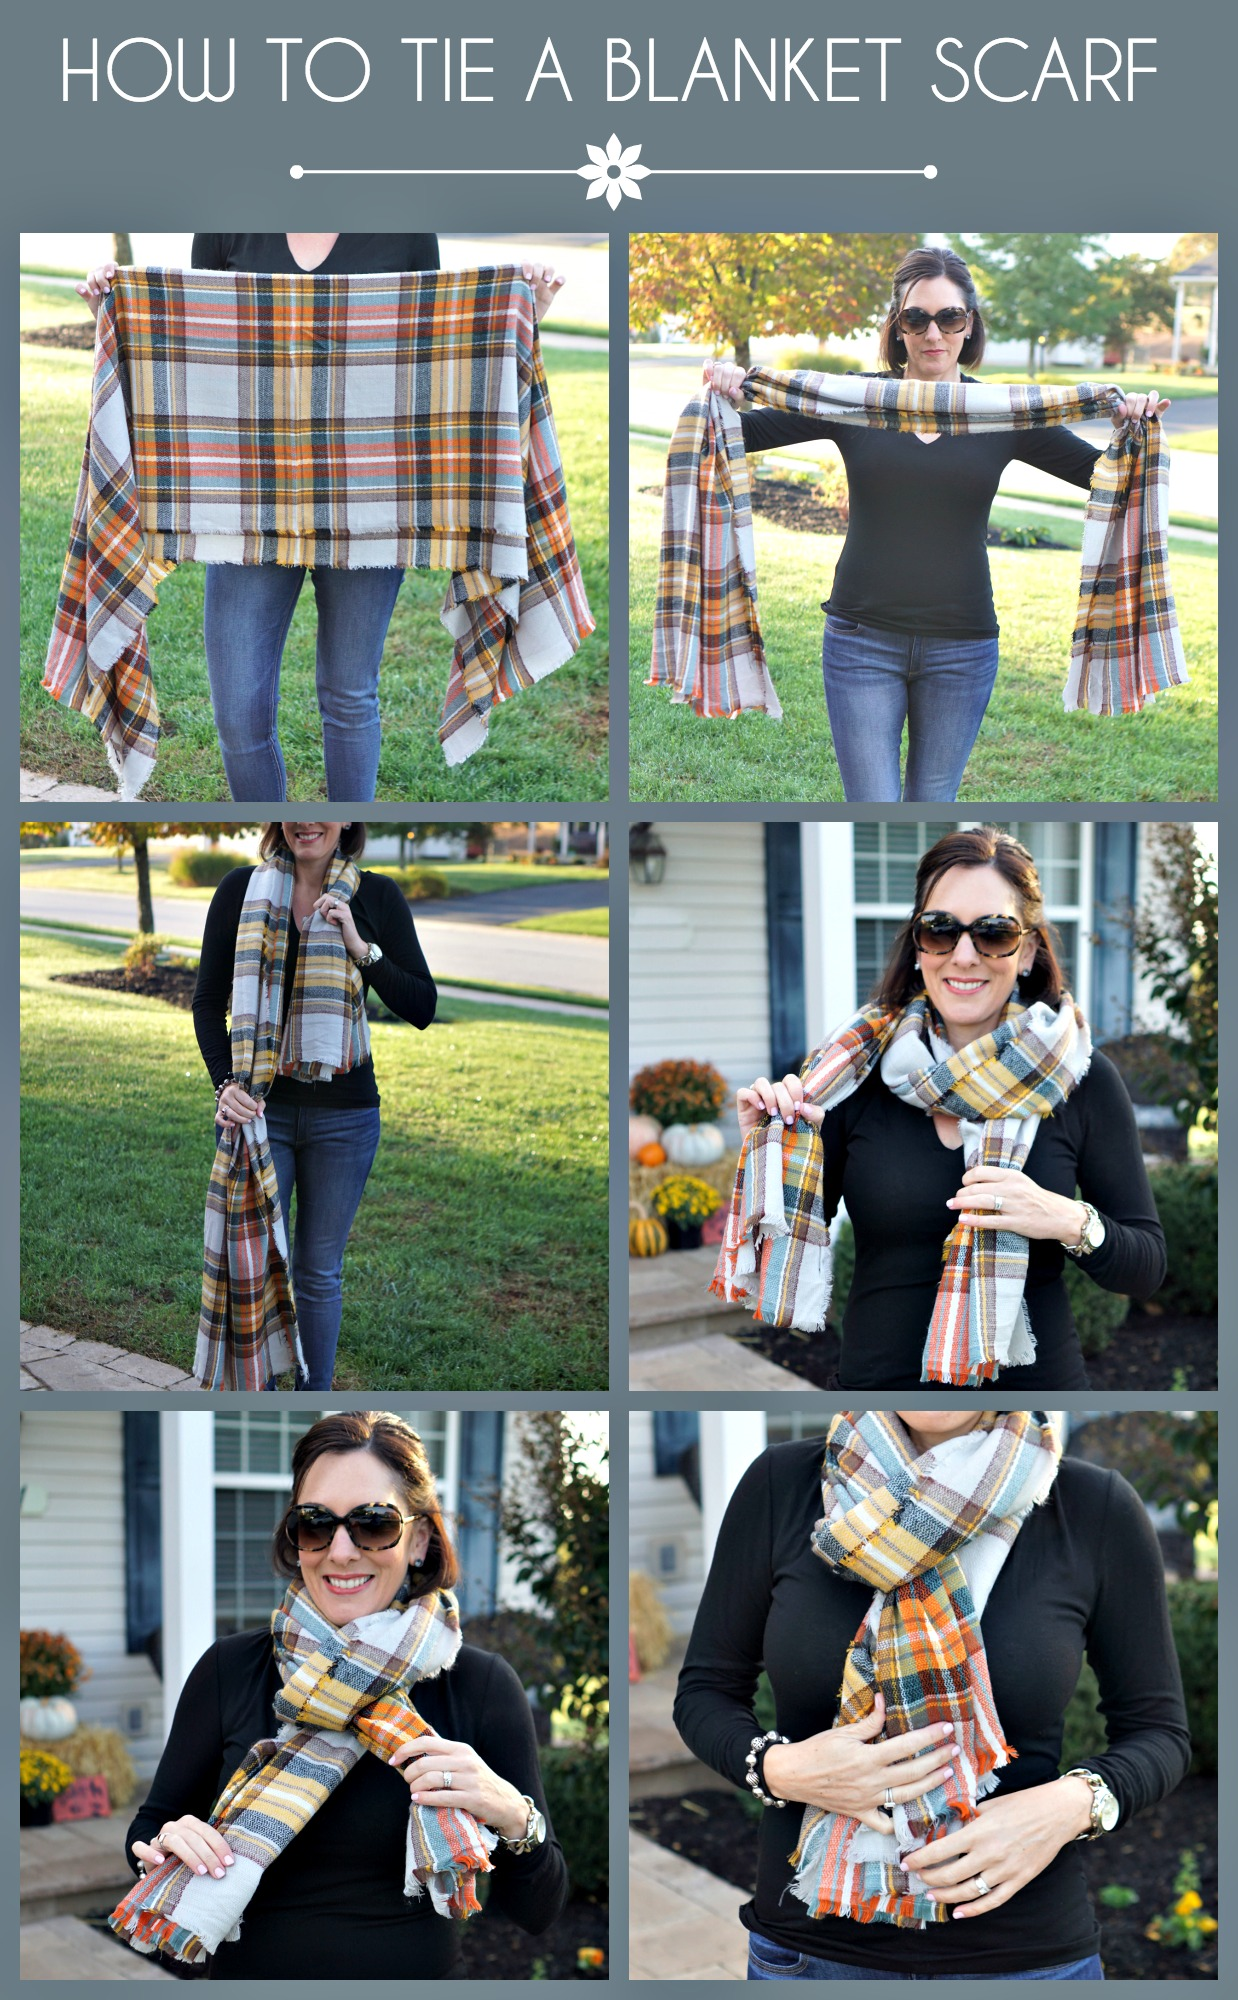 3 easy ways to tie a blanket scarf how to tie a blanket scarf ccuart Choice Image